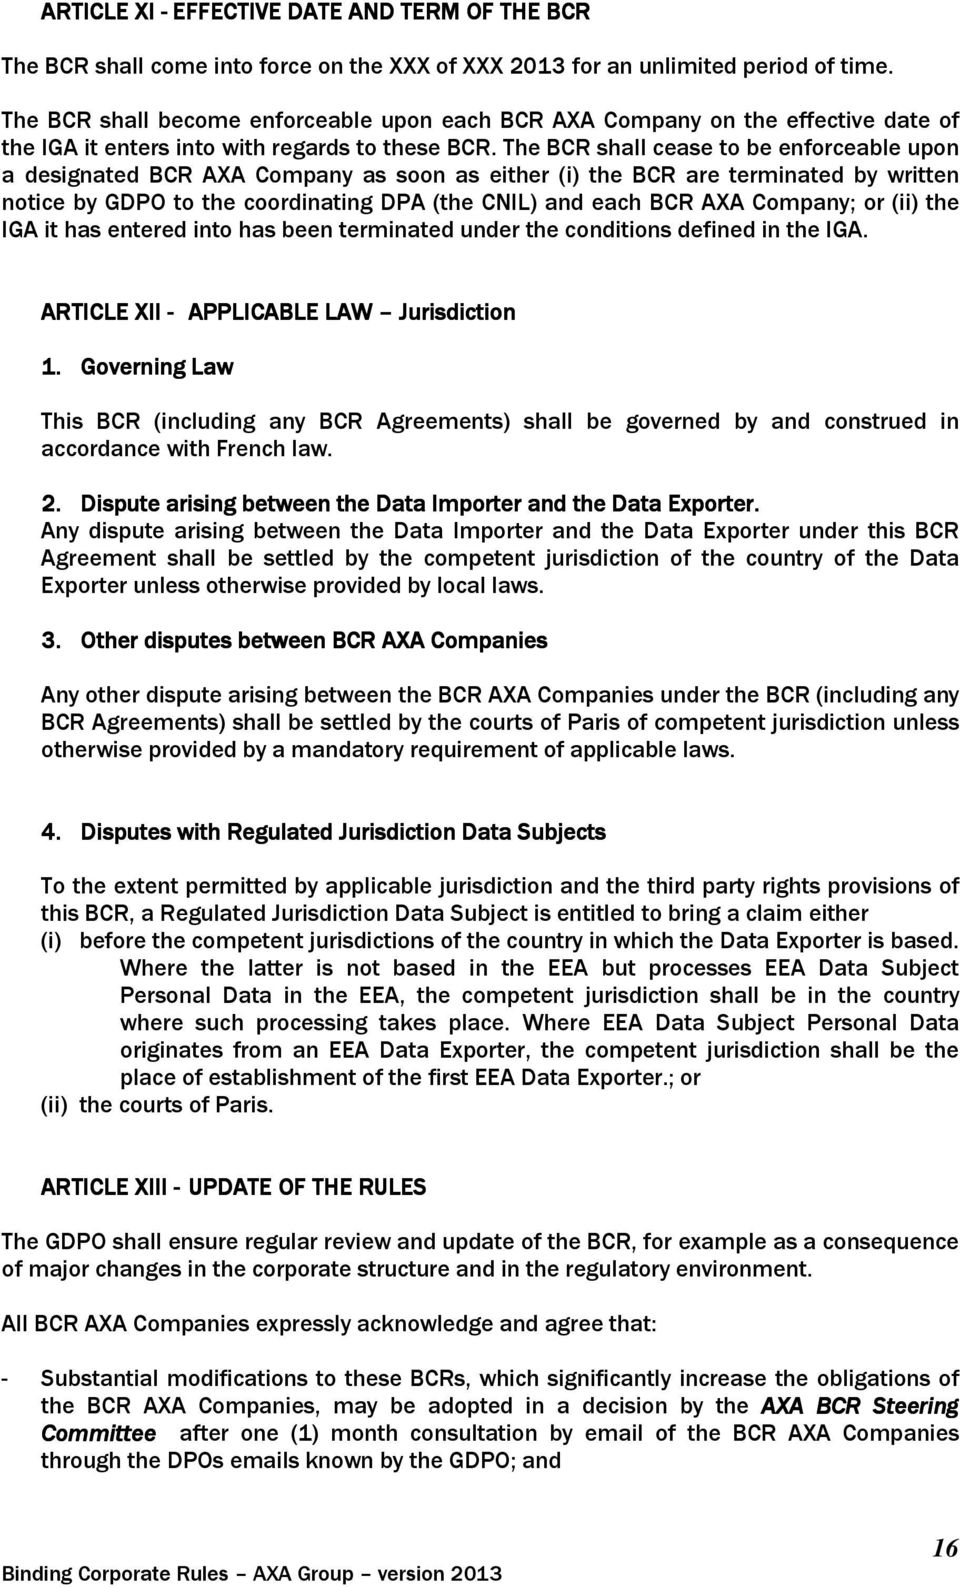 The BCR shall cease to be enforceable upon a designated BCR AXA Company as soon as either (i) the BCR are terminated by written notice by GDPO to the coordinating DPA (the CNIL) and each BCR AXA